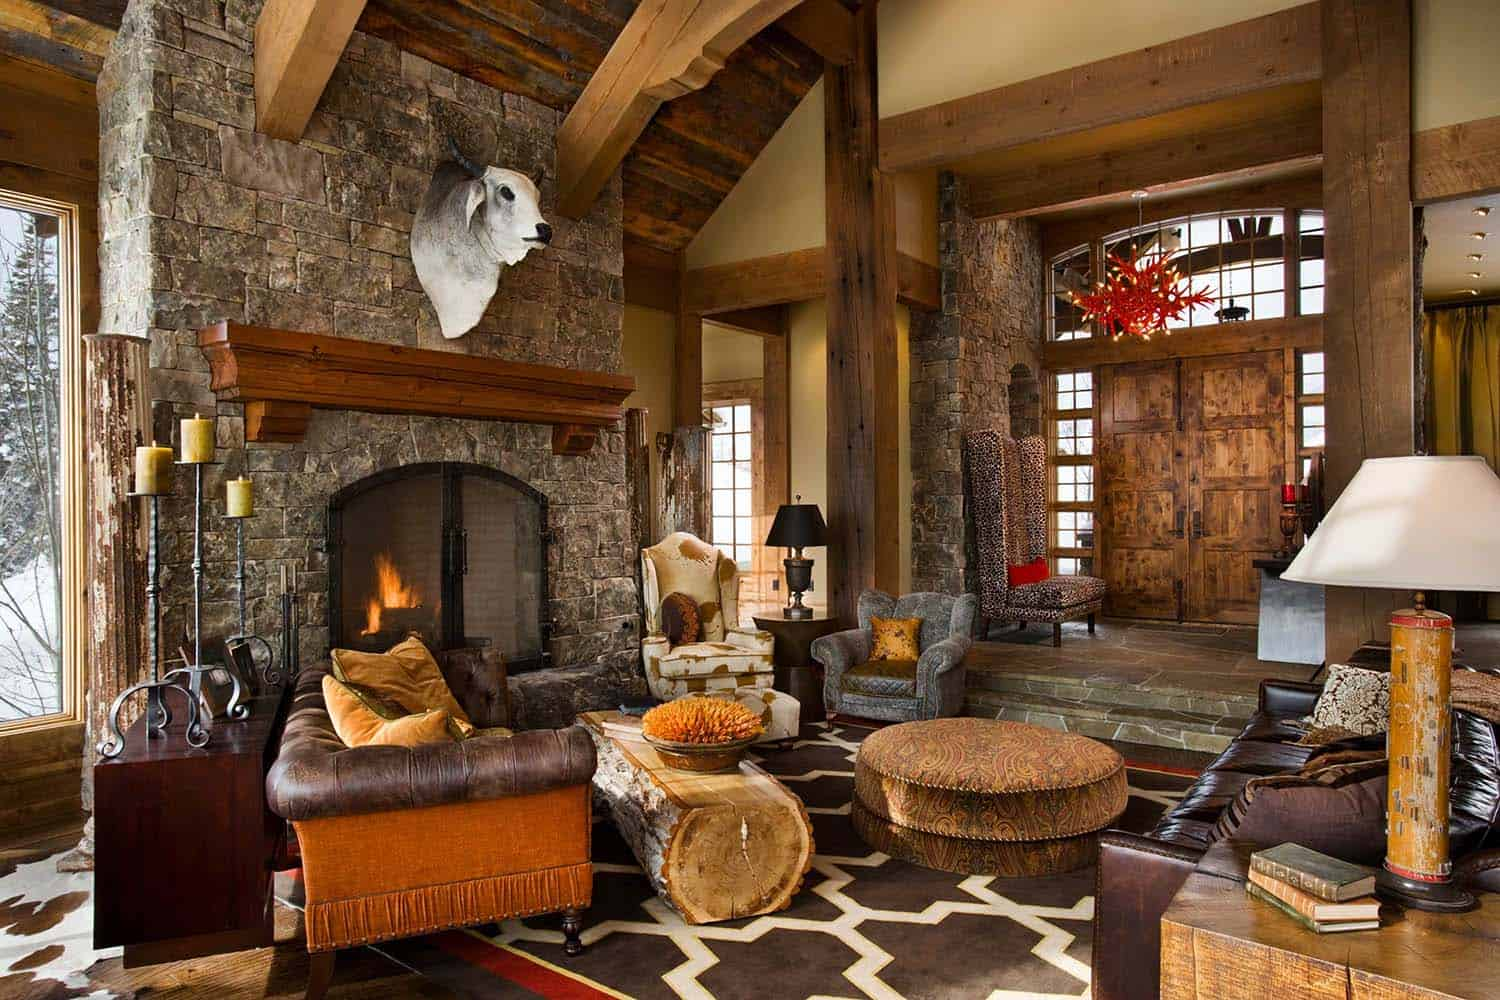 Enchanting Modern-rustic Dwelling In The Rugged Mountains